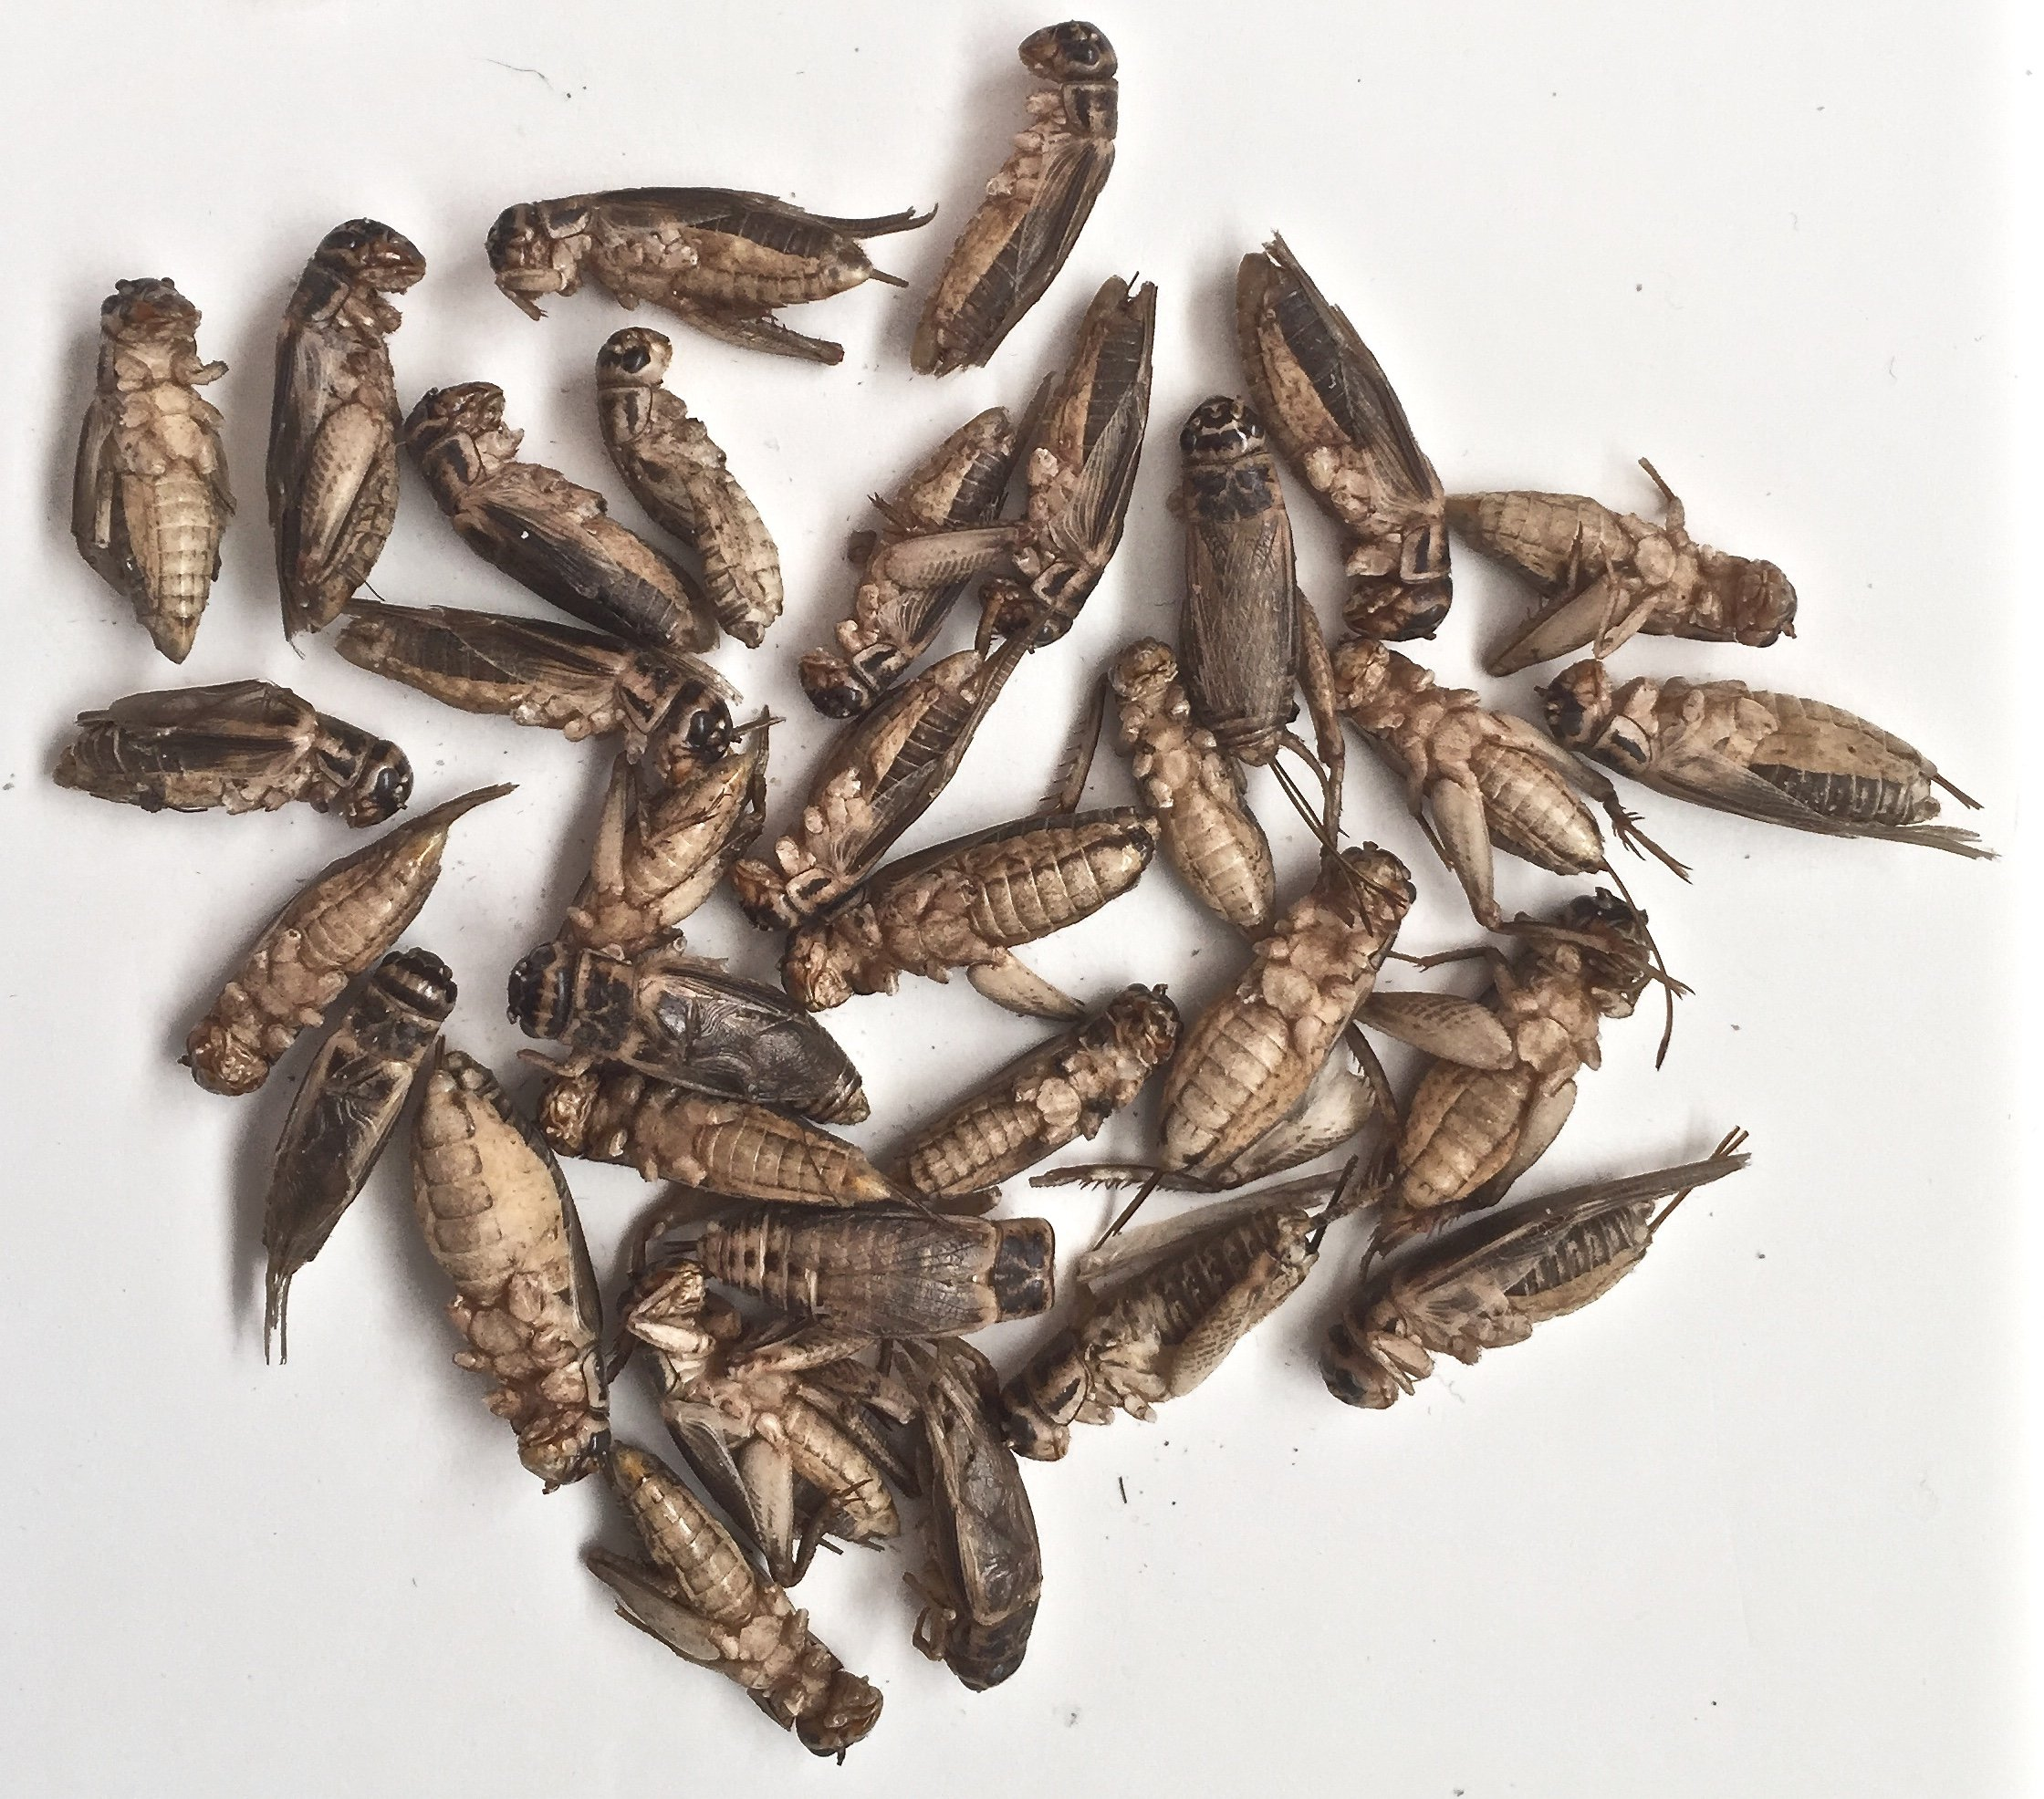 FREEZE DRIED CRICKETS (SIFTED!) 8 OZ by 8 OZ FREEZE DRIED CRICKETS (Image #2)